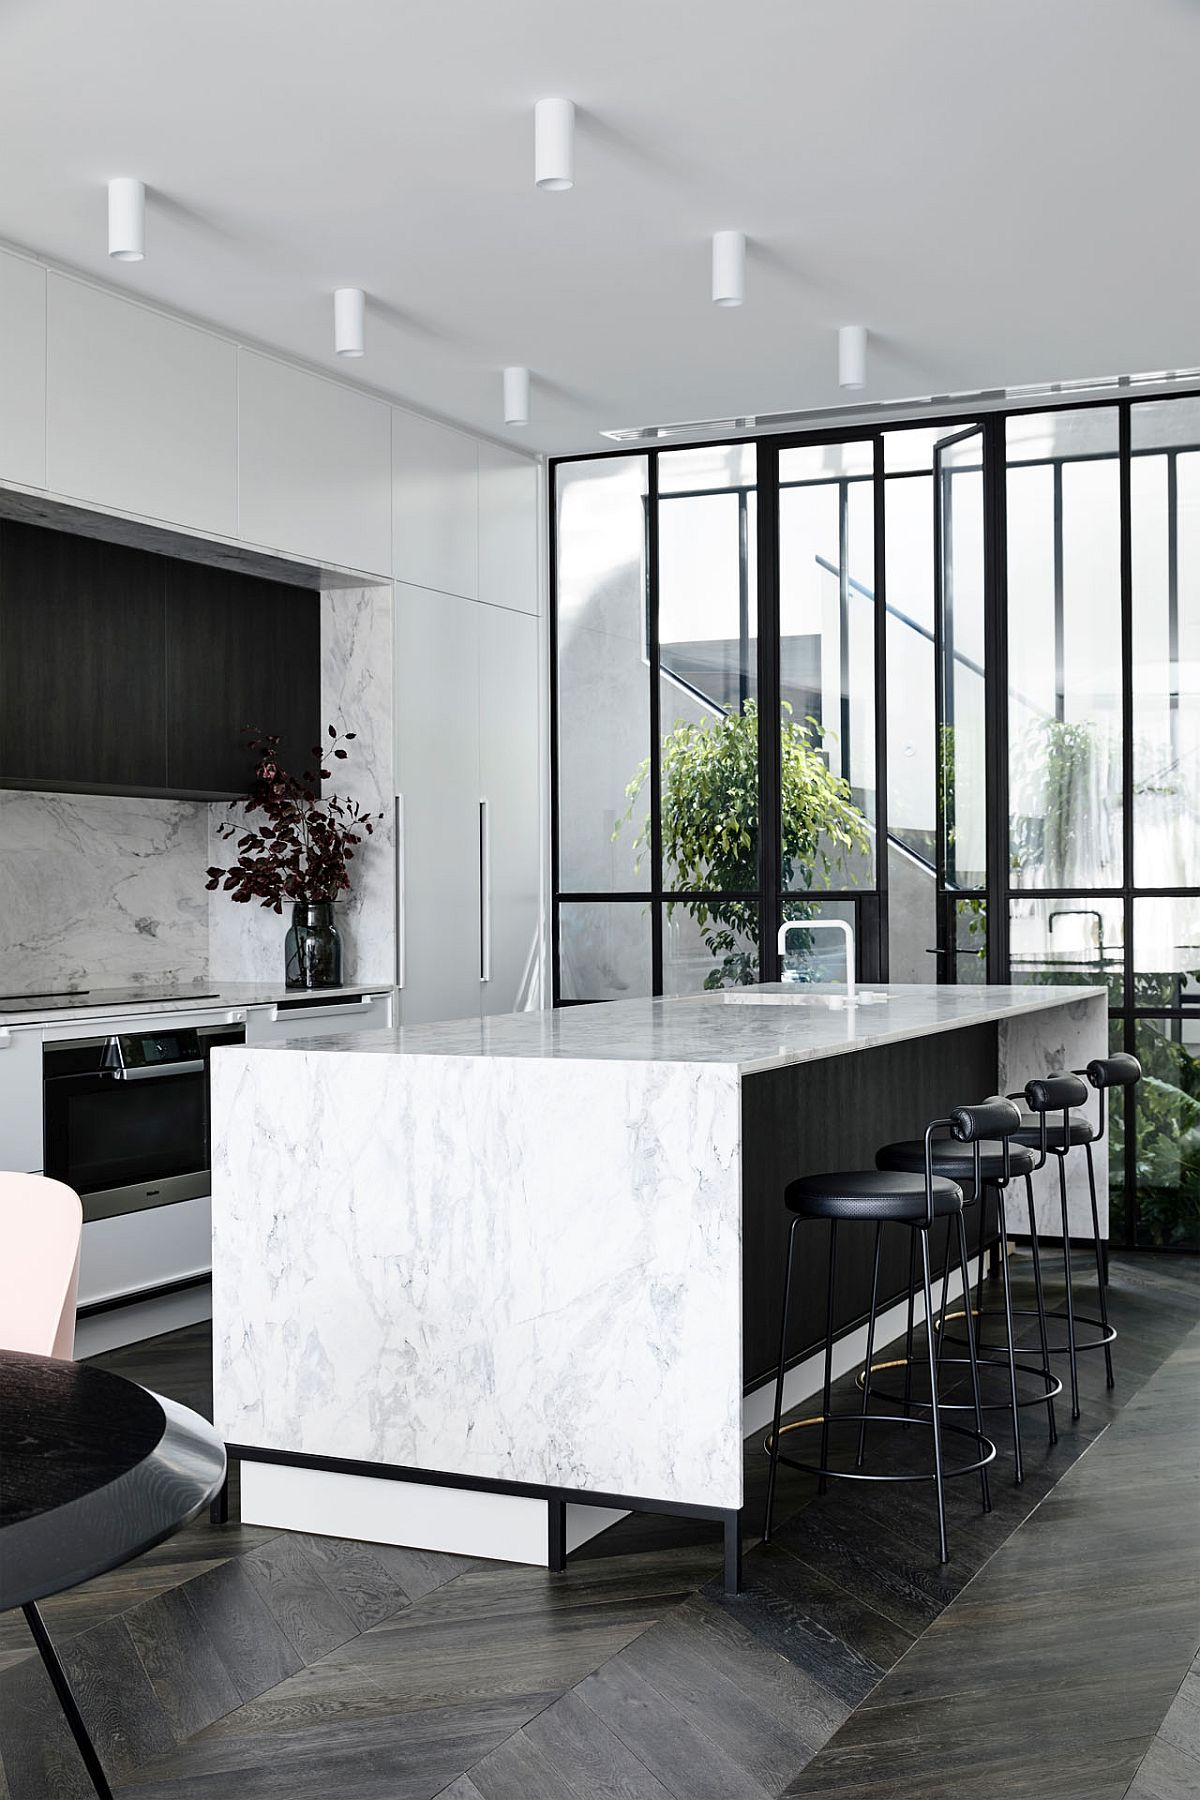 Posh-marble-finishes-combined-with-darker-materials-inside-the-kitchen